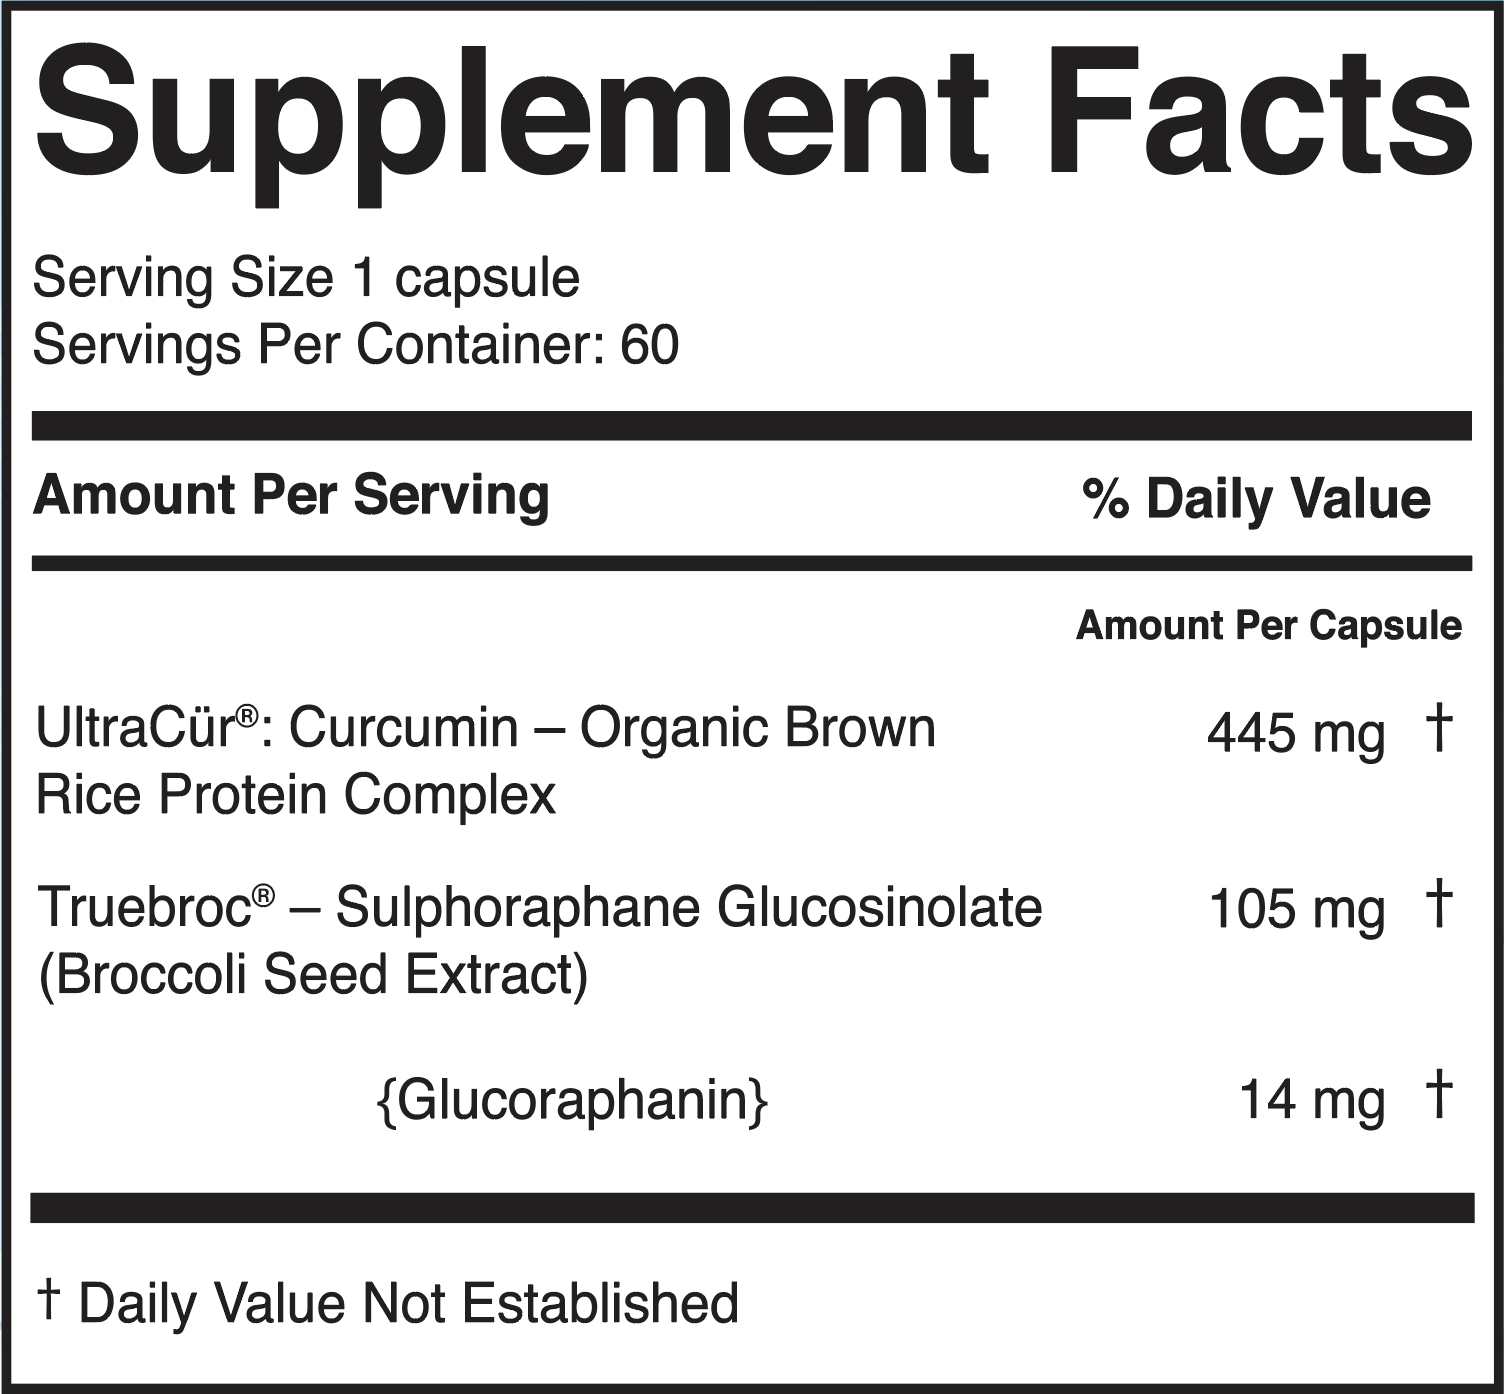 NeuralBroc Supplement Facts Panel